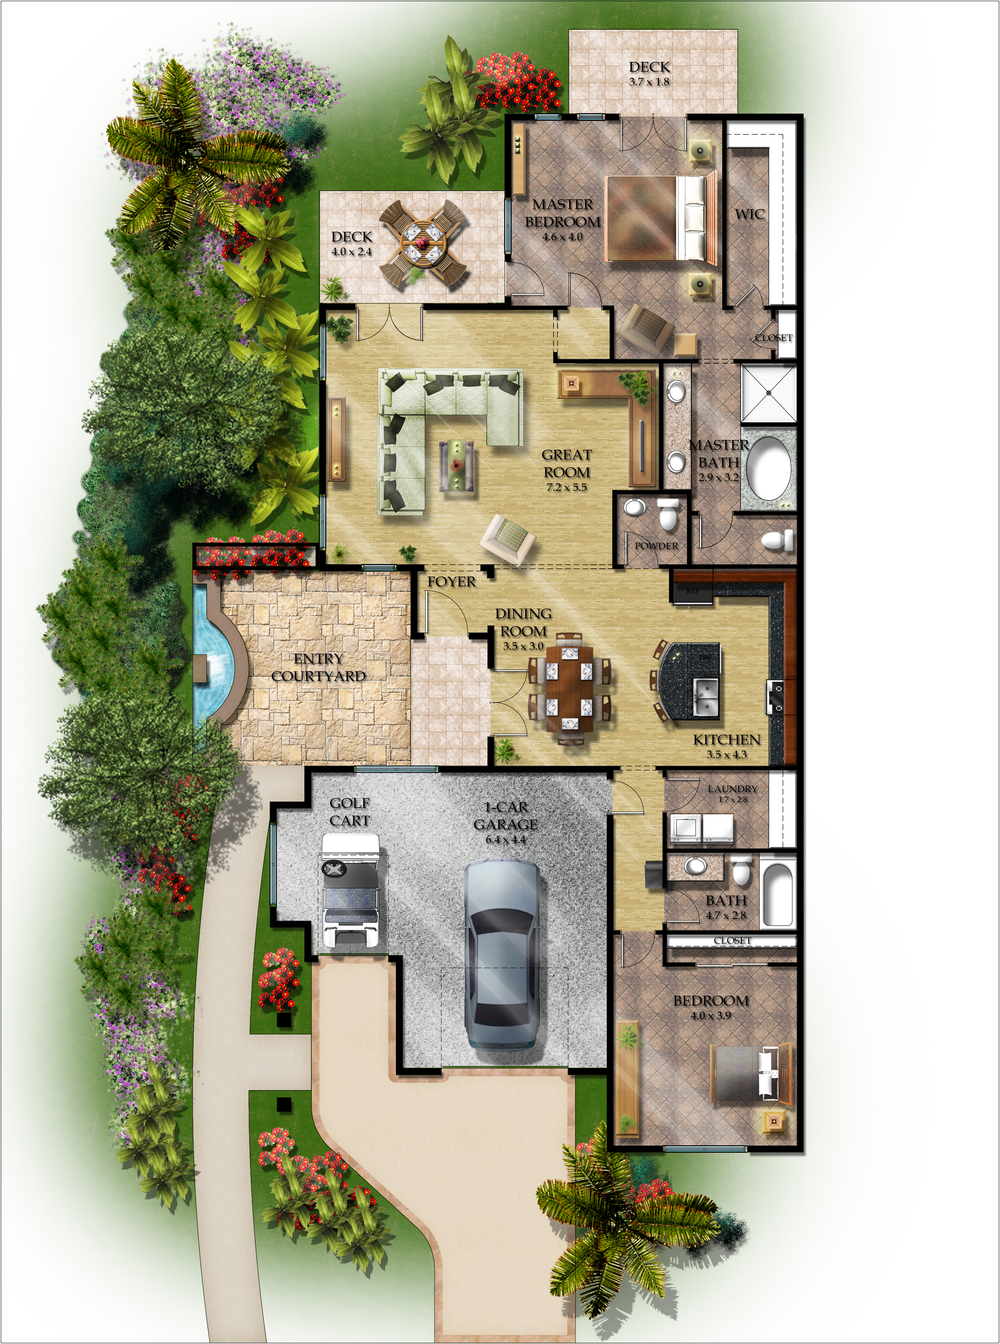 paired homes-floor plans 3-main-revised2 copy.jpg